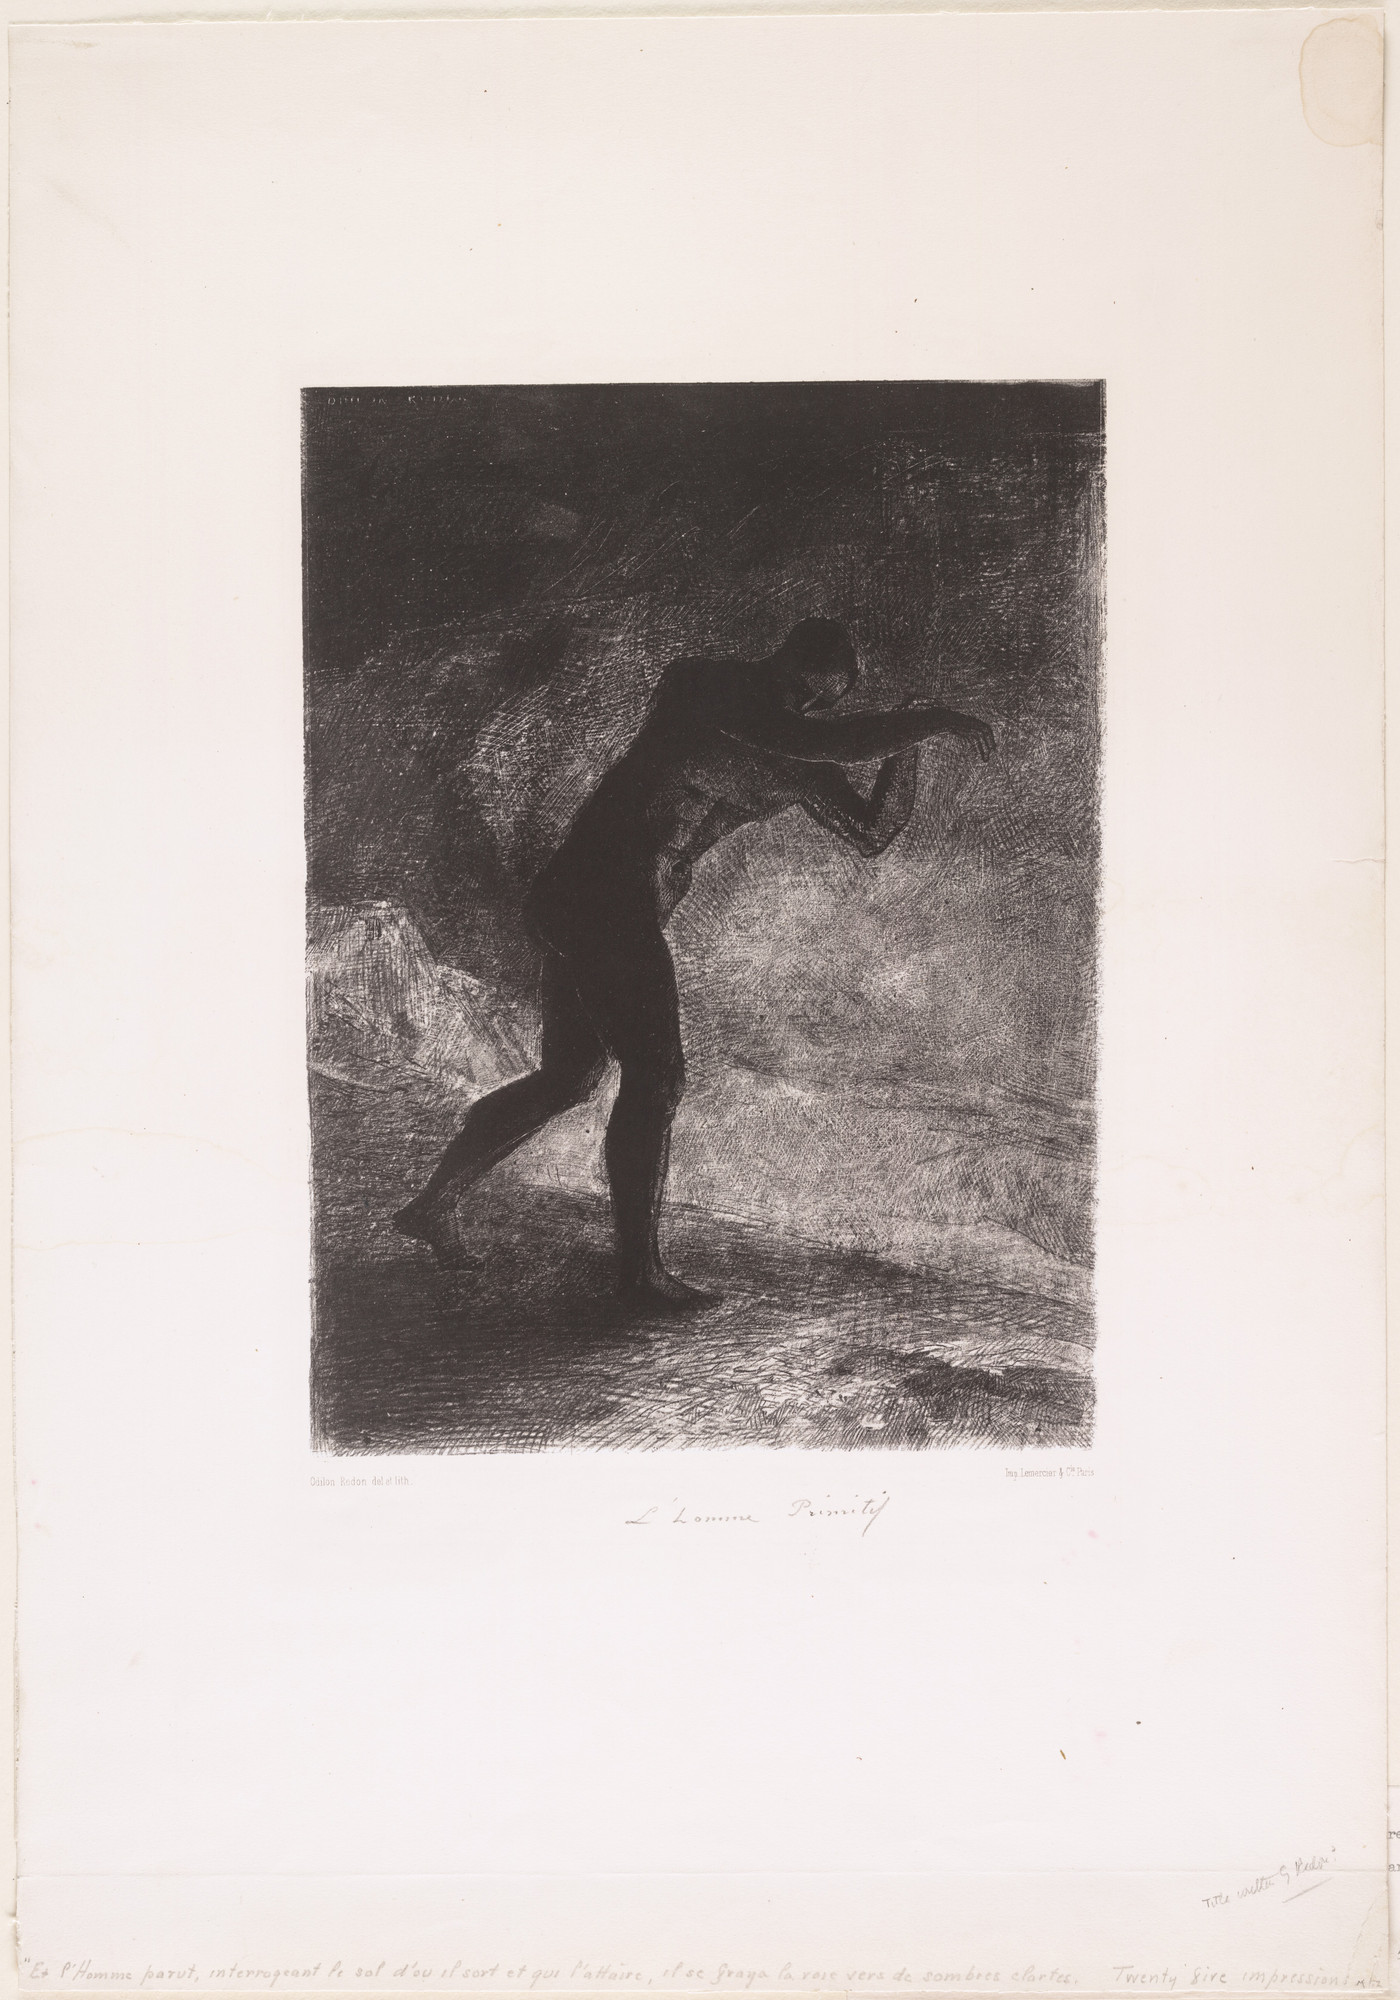 Odilon Redon. And Man Appeared, Questioning the Earth from Which He Came and Which Draws Him Back, as He Cleared a Way Forward to the Murky Light (Et l'homme parut, interrogeant le sol d'où il sort et qui l'attire, il se fraya la voie vers de sombres clartés). 1883